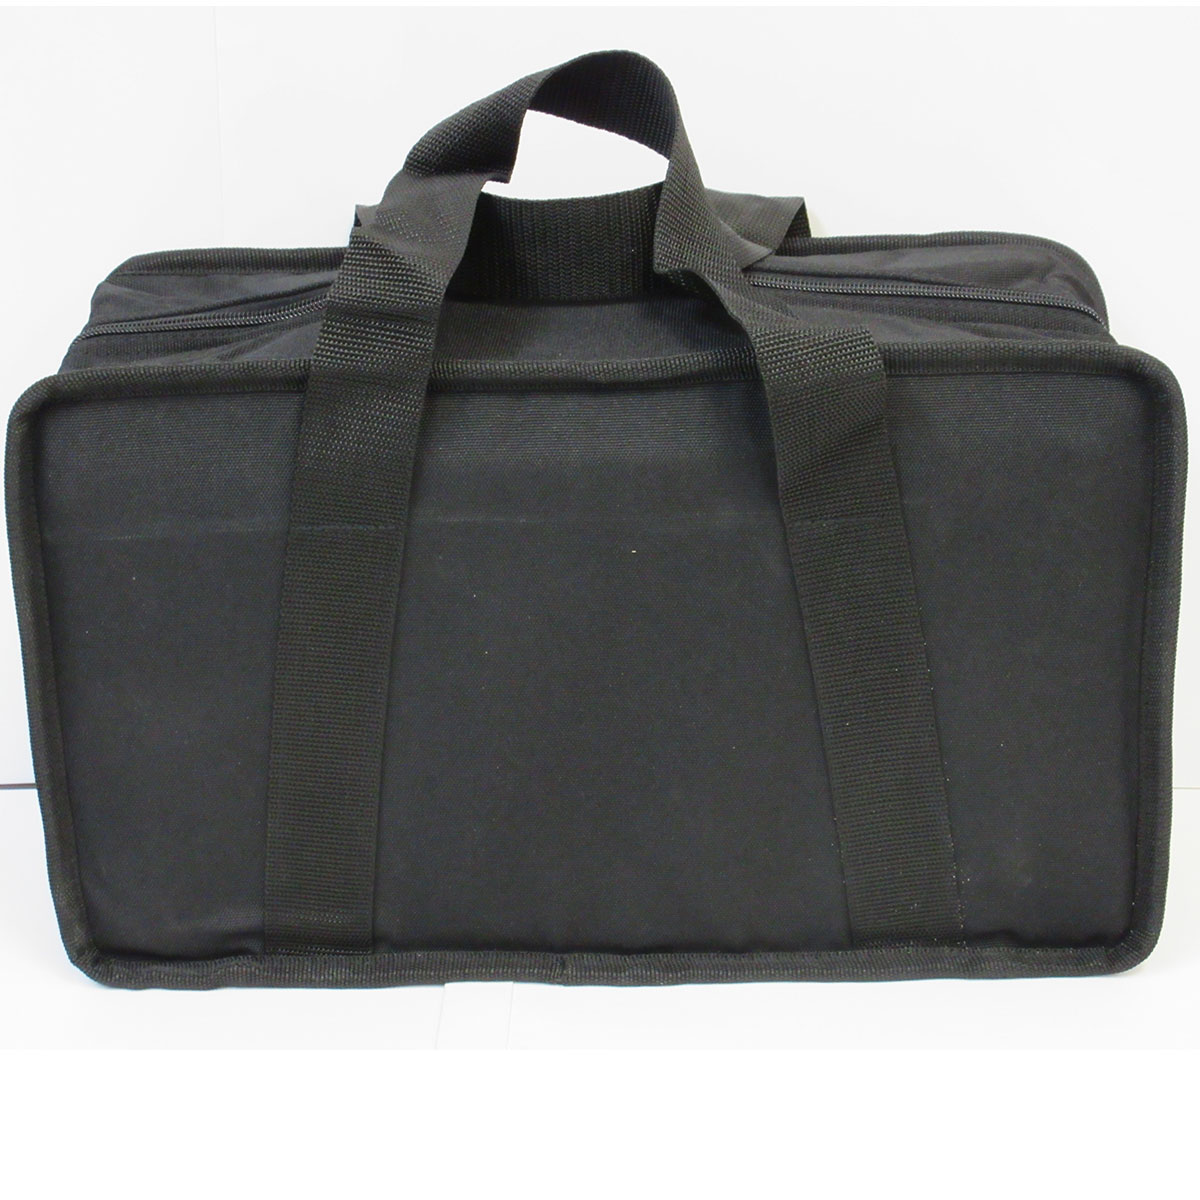 Padded-Zipper-Tote